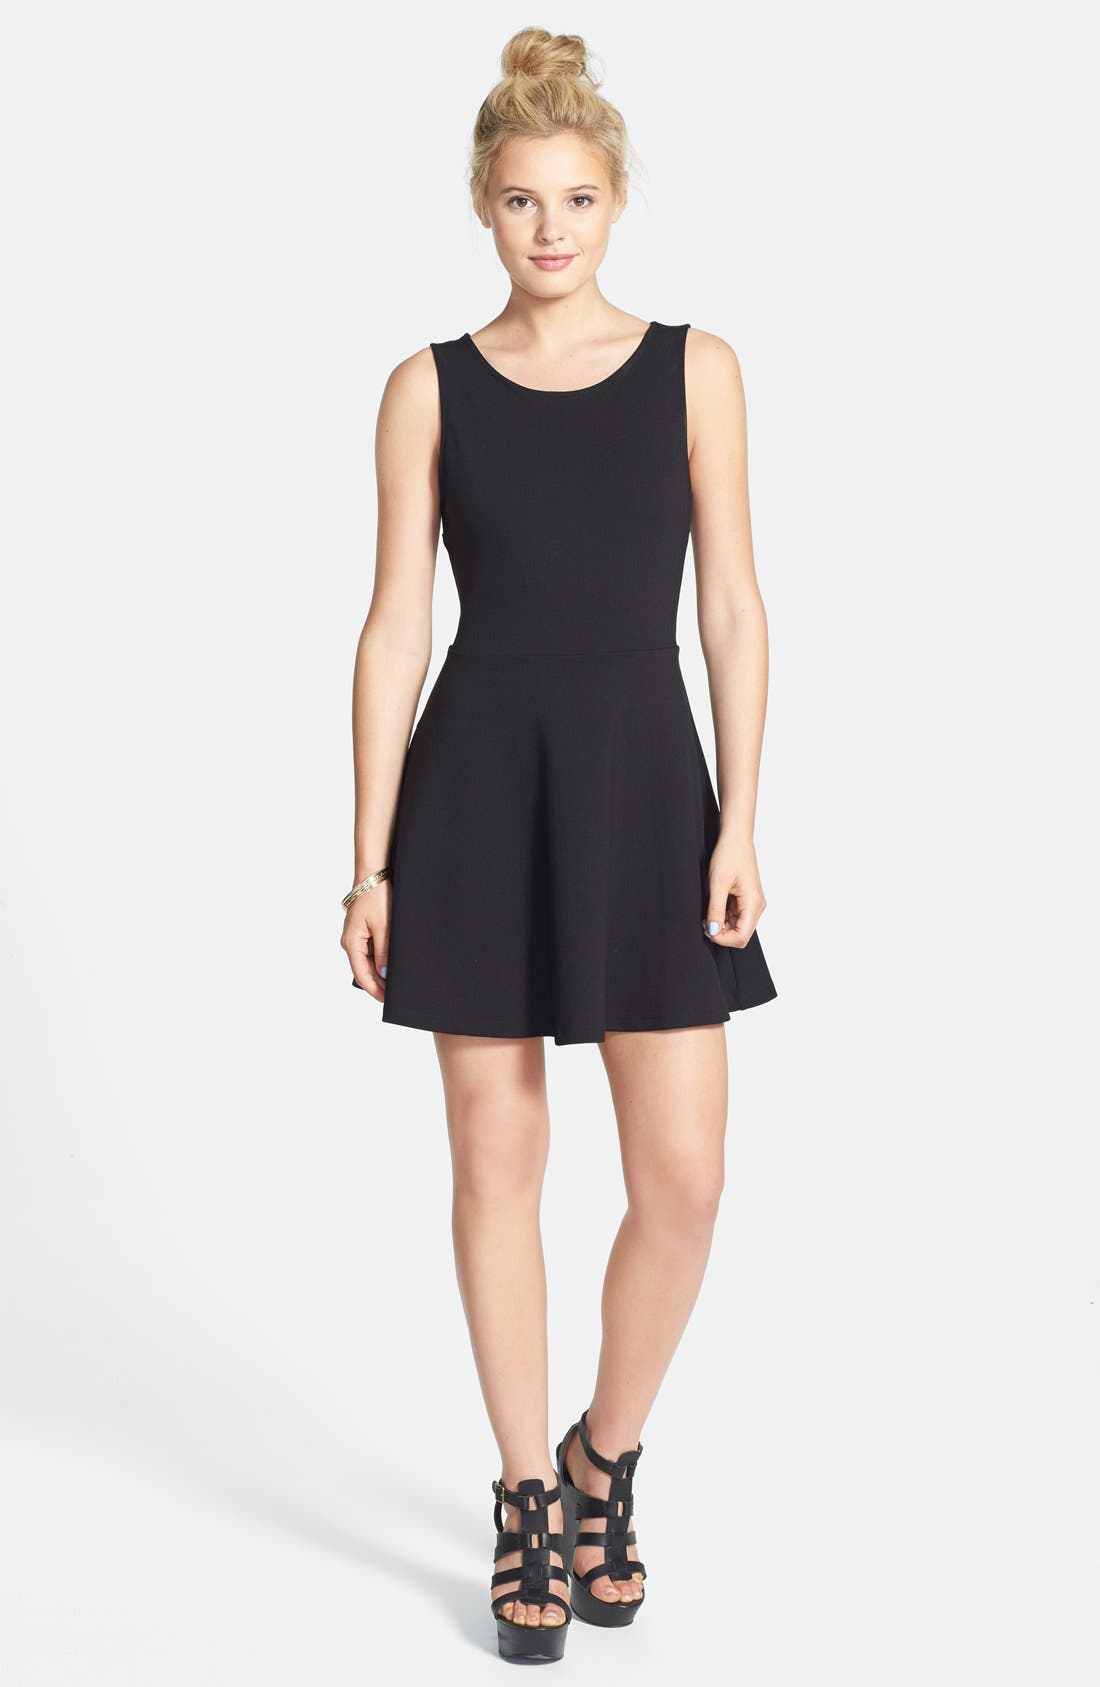 Alternate Image 1 Selected - Elodie Bow Back Skater Dress (Juniors)